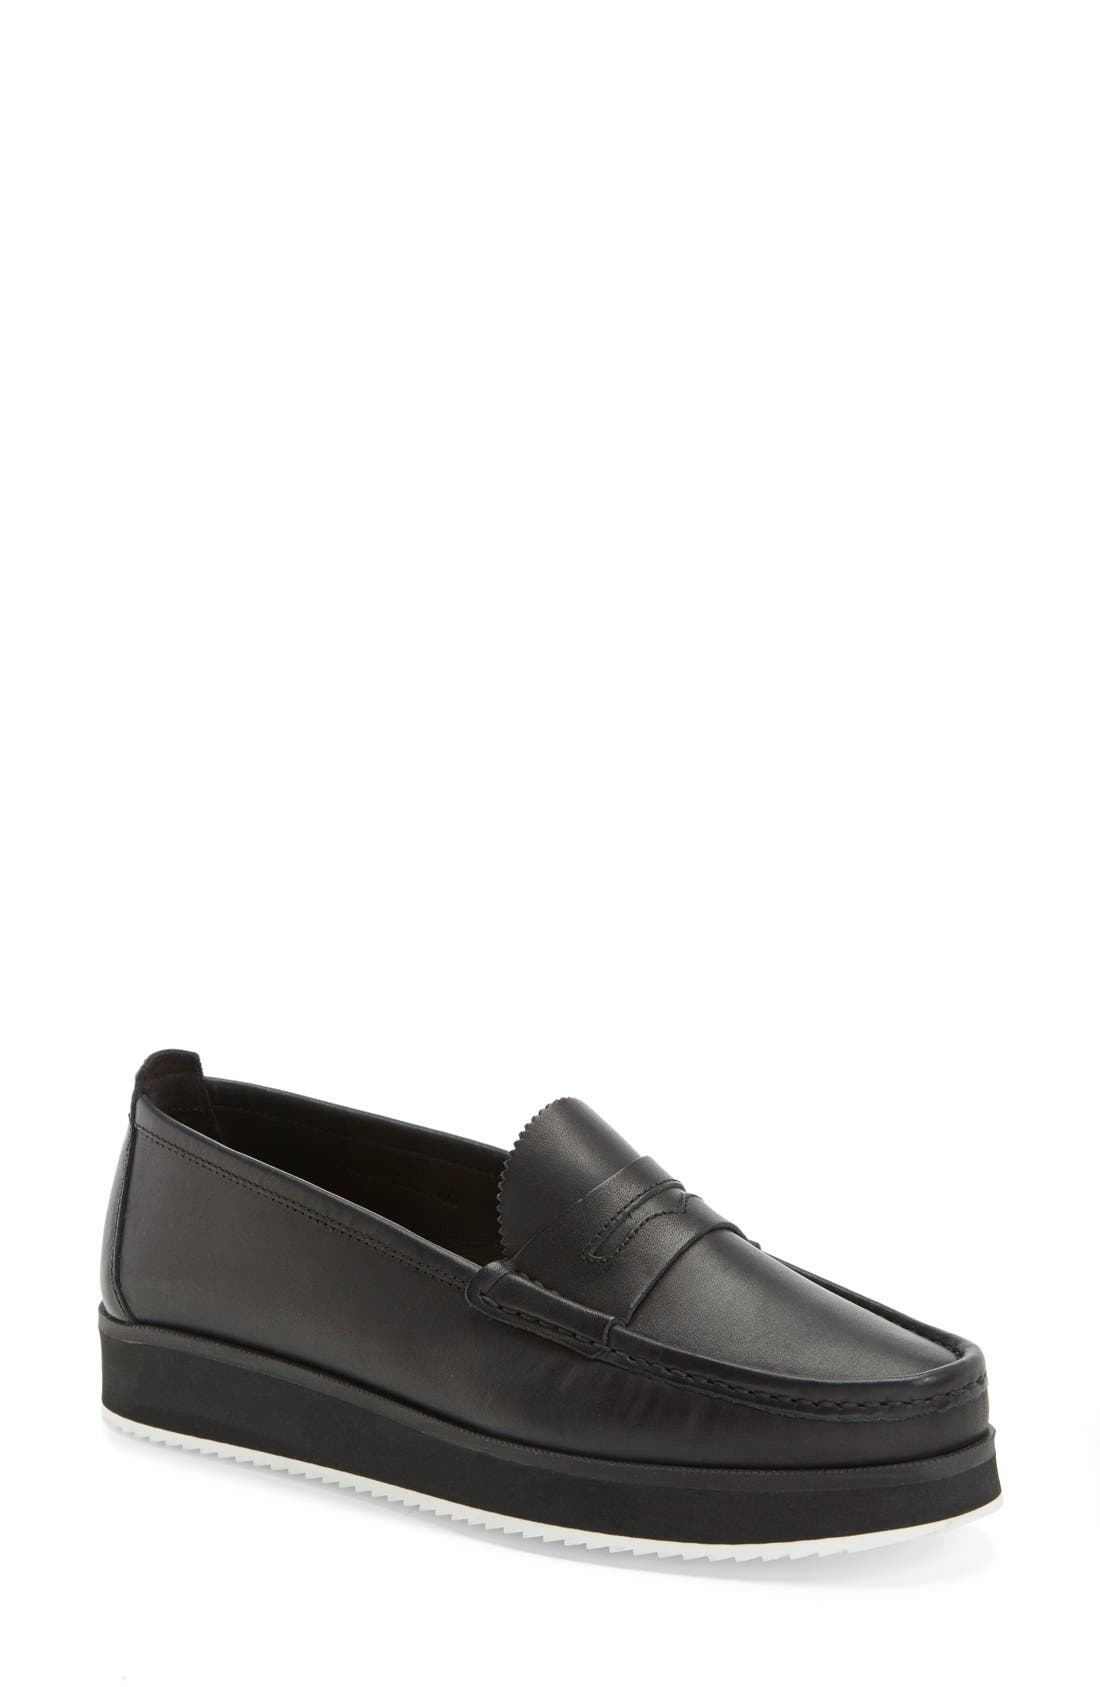 'Tanya' Penny Loafer,                         Main,                         color, Black Leather